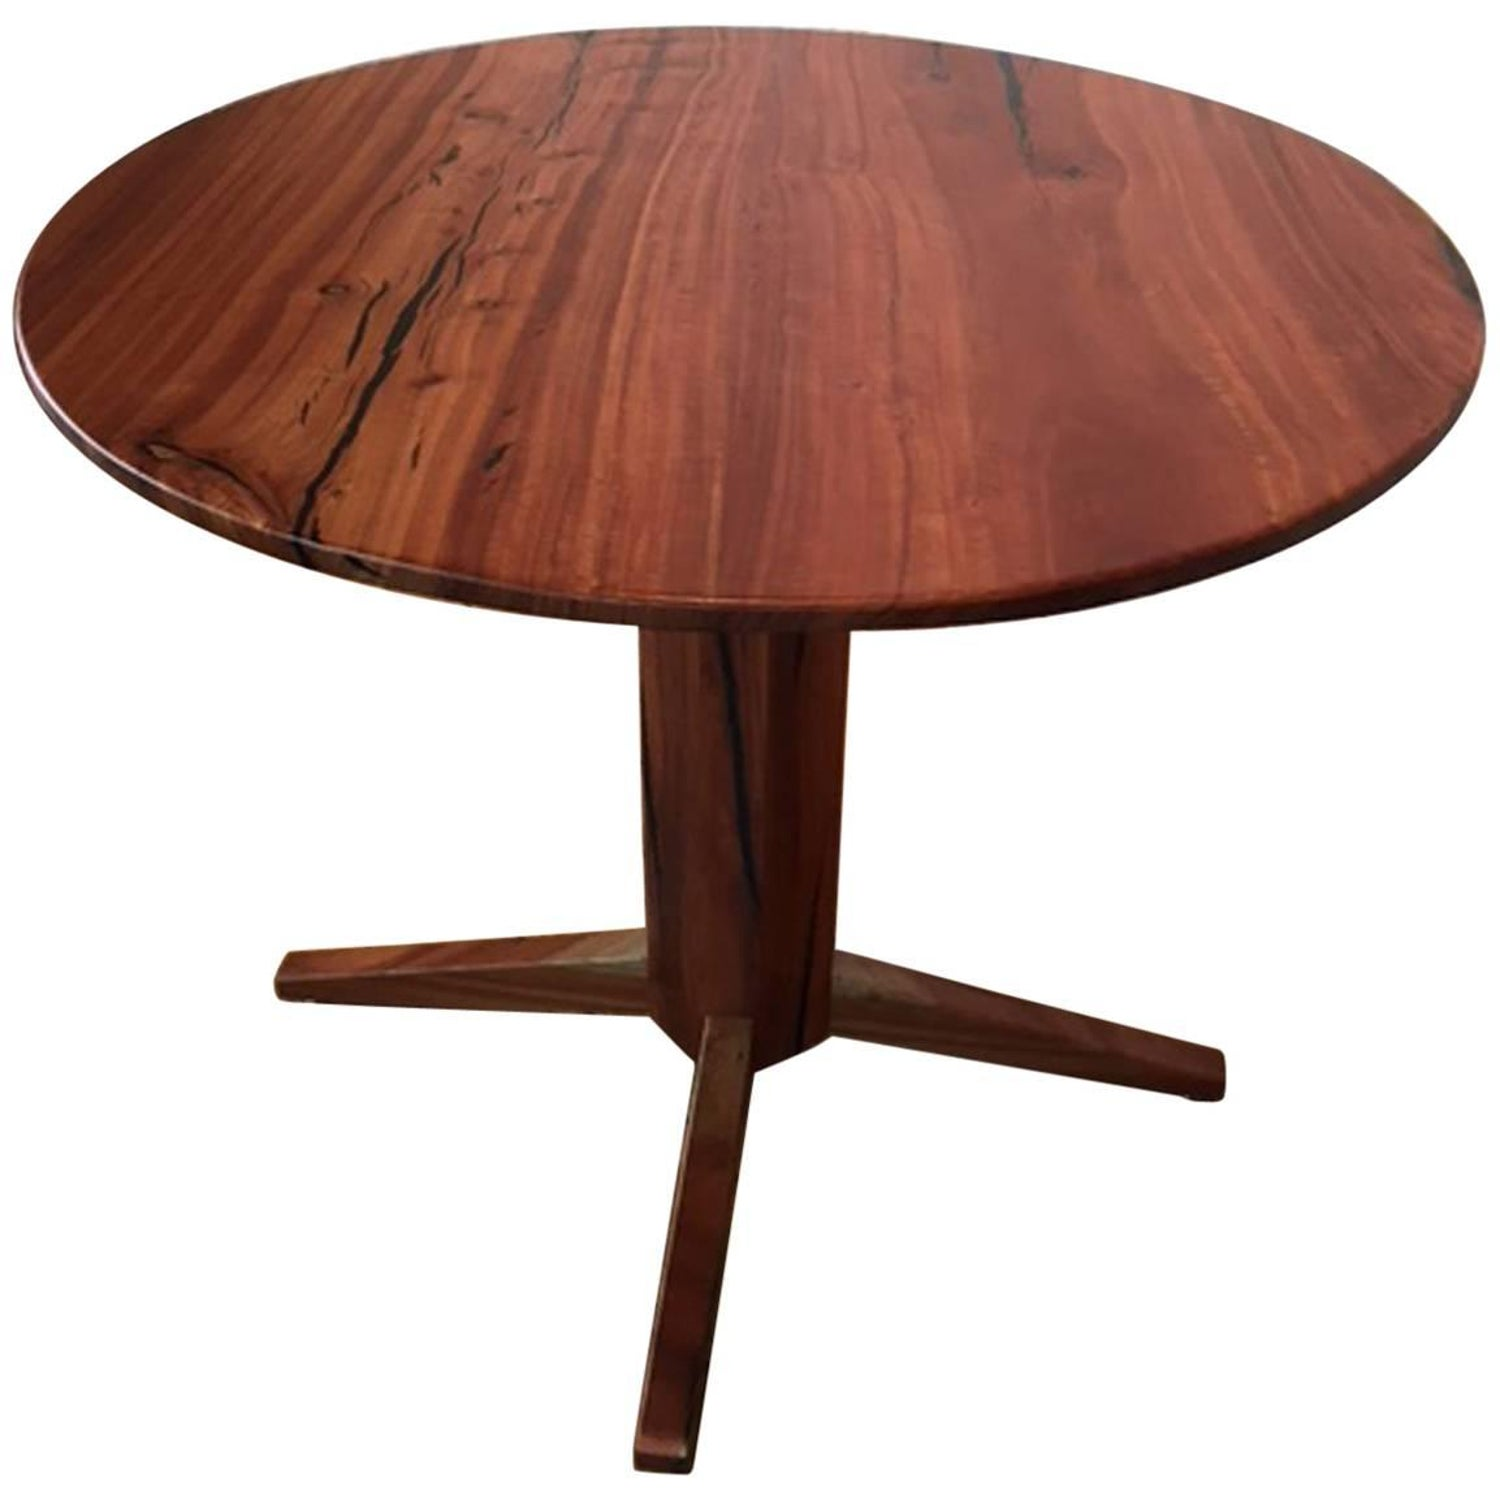 Eucalyptus wood center table for sale at 1stdibs